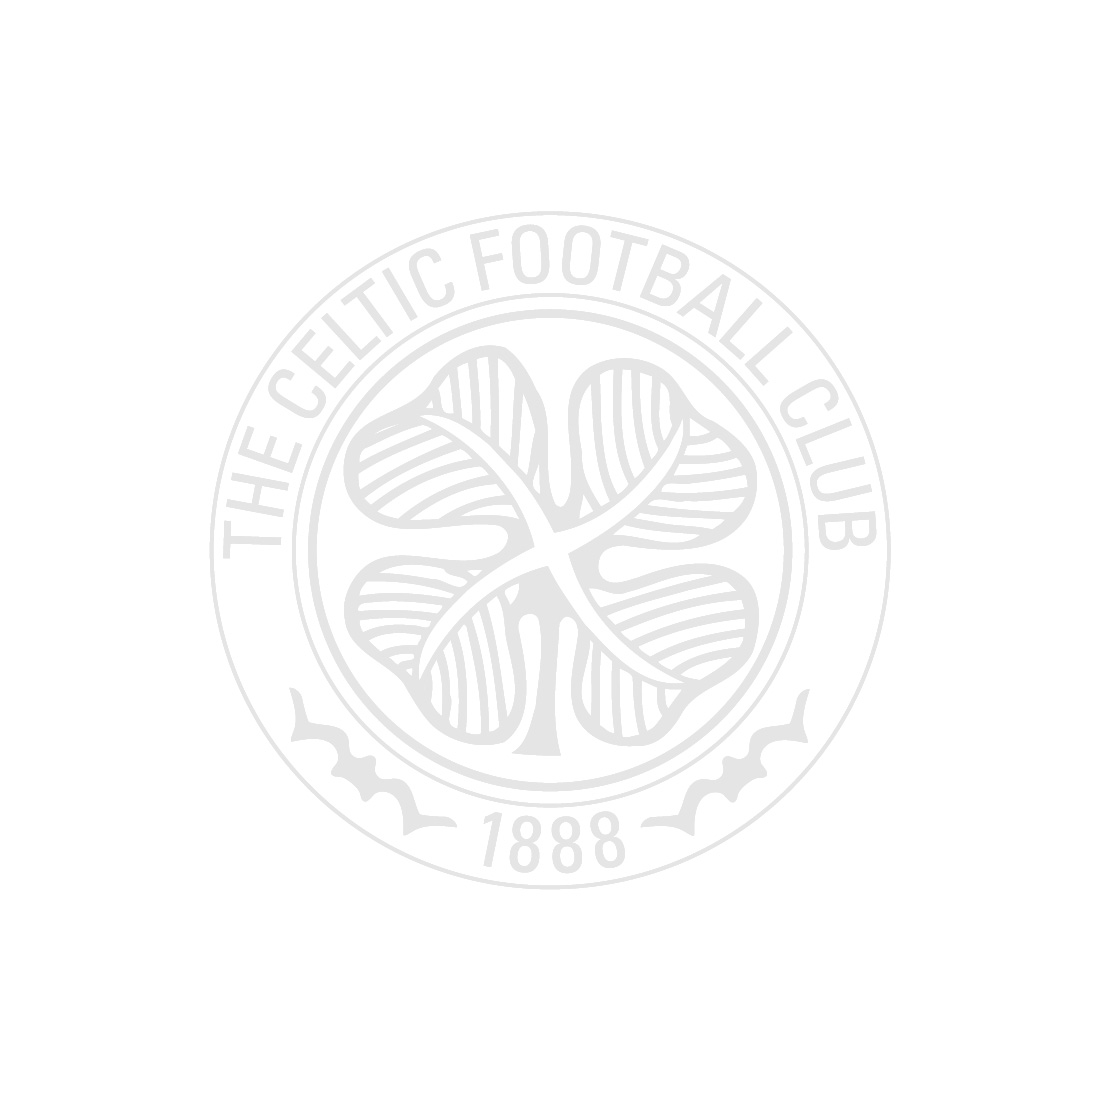 Special Edition Celtic FC Foundation T-shirt